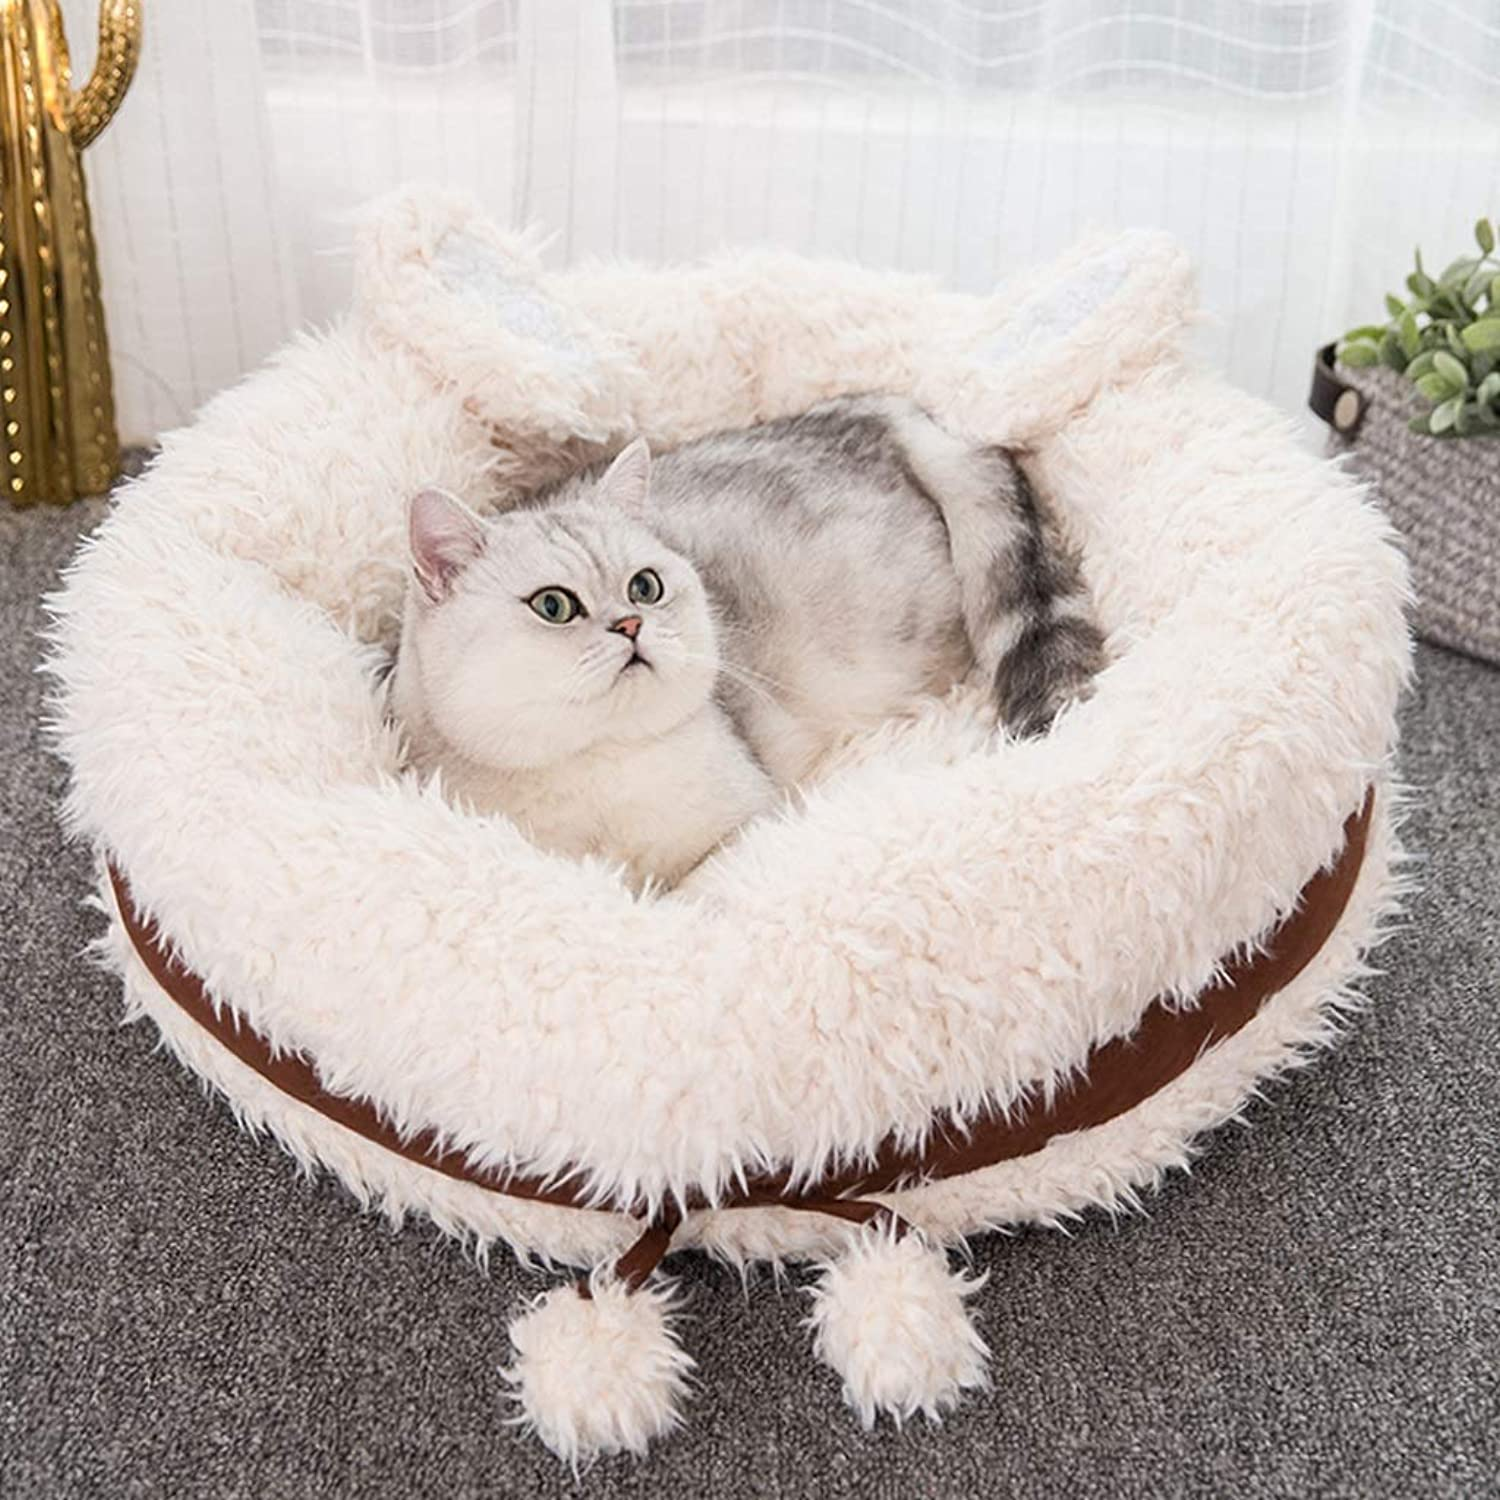 KGMYGS Winter Warm Cat Litter Thick Closed Design Four Seasons Universal Pet Bed Cat Supplies, Pink bluee Brown Pet bed (color   BROWN, Size   55CM)